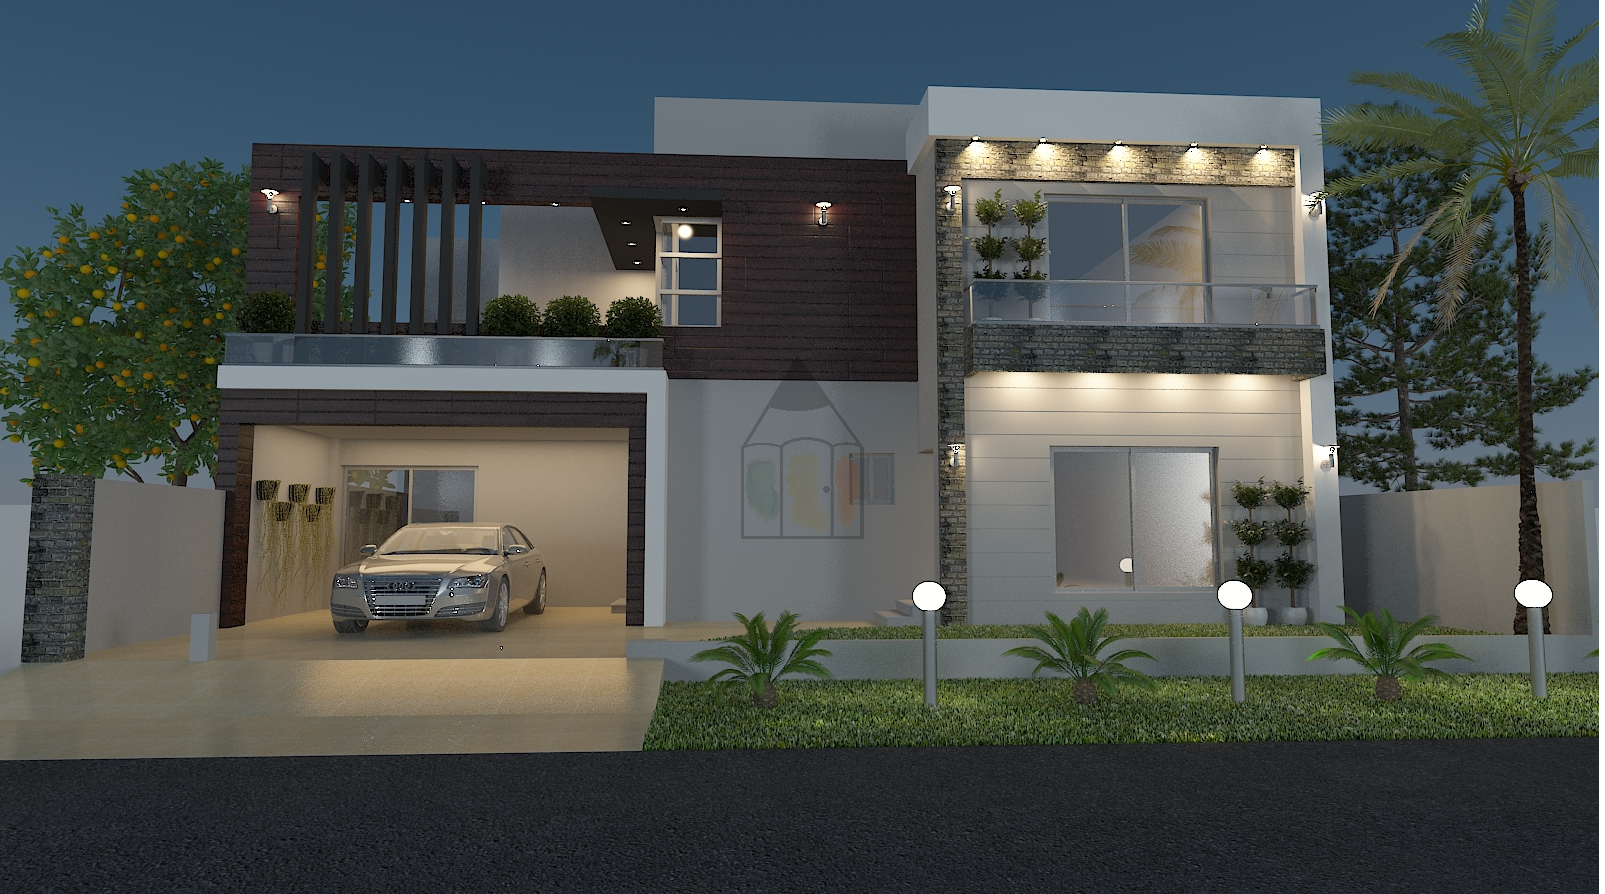 Ghar Ka Naksha With 5 Bedrooms With Attached Bathrooms Designed